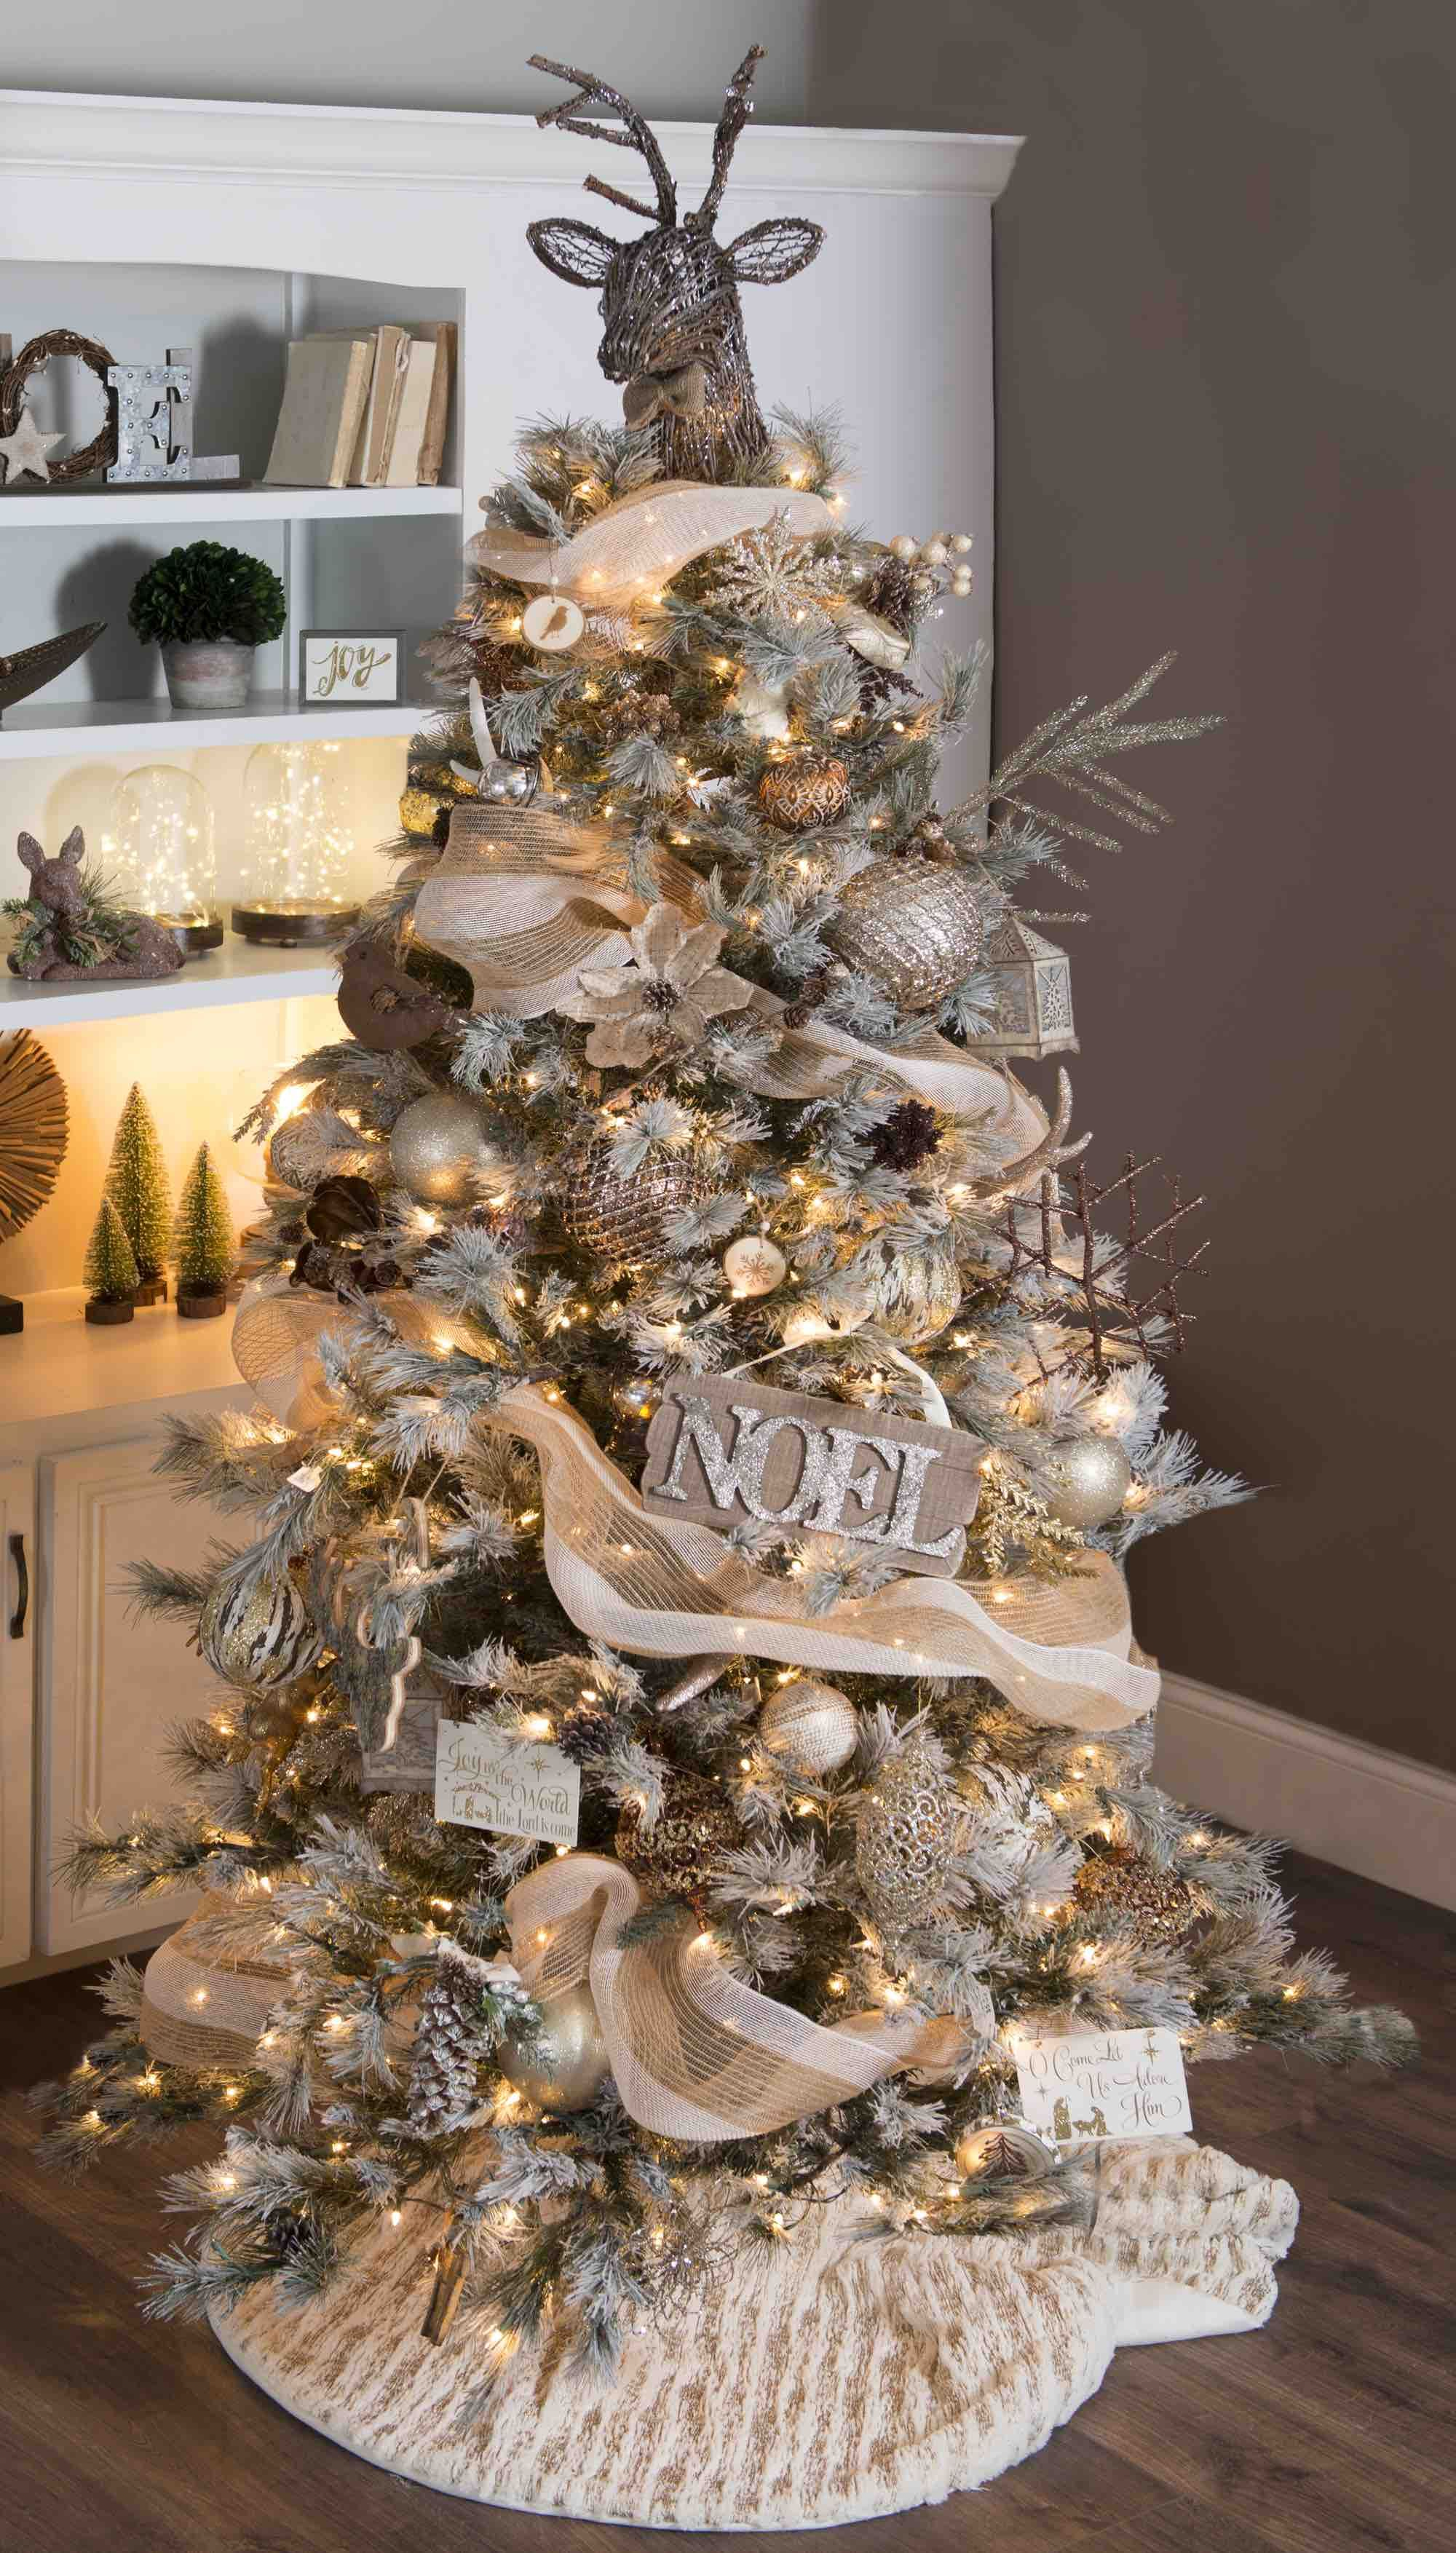 find your holiday decorating style when you browse kirklands collections the rustic collection includes gorgeous wall decor with a vintage feel to give